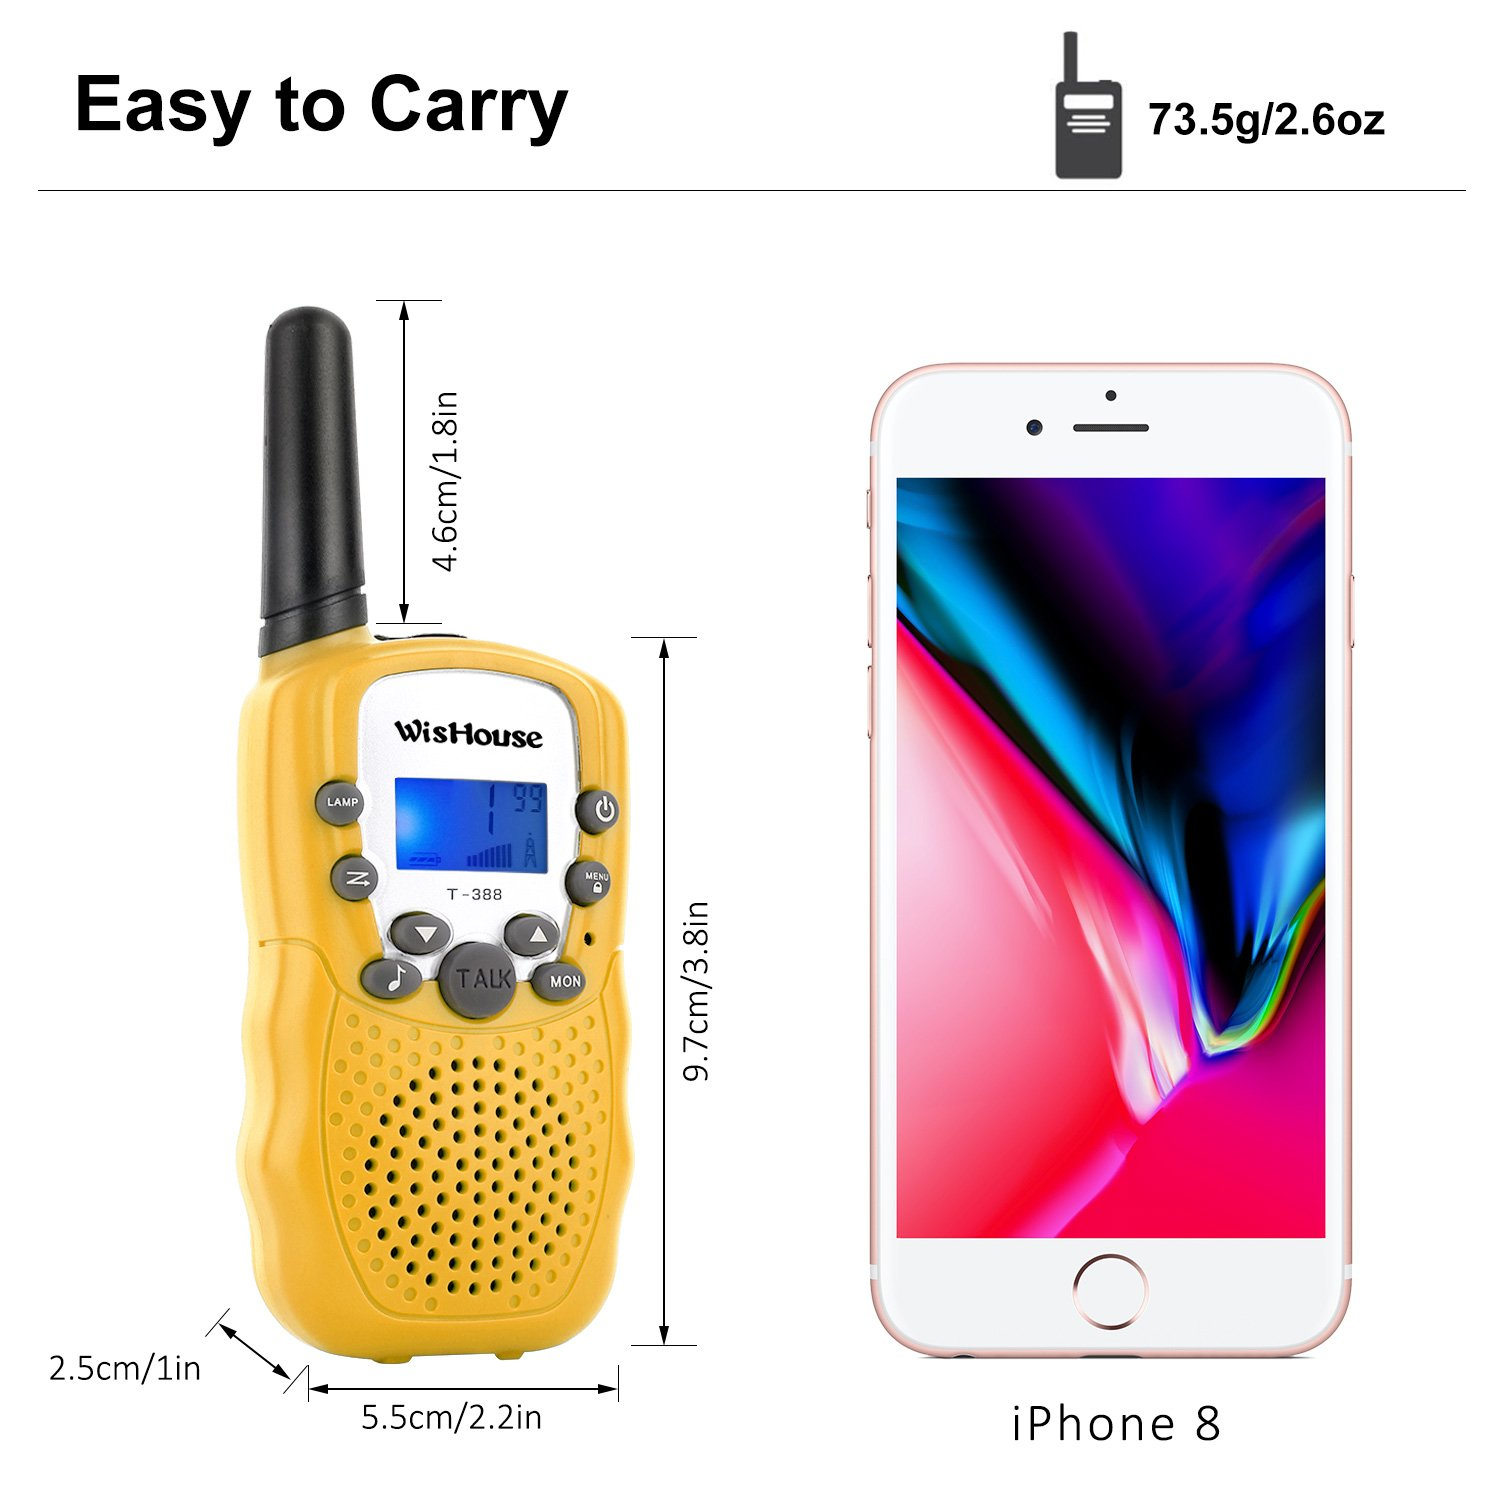 WisHouse Walkie Talkies for Kids, Toys for Boys and Girls Best Handheld Walky Talky with Flashlight,VOX Function,Share Your Happiness with Family and Friends Halloween(T388 Yellow 4 Pack) by Wishouse (Image #5)